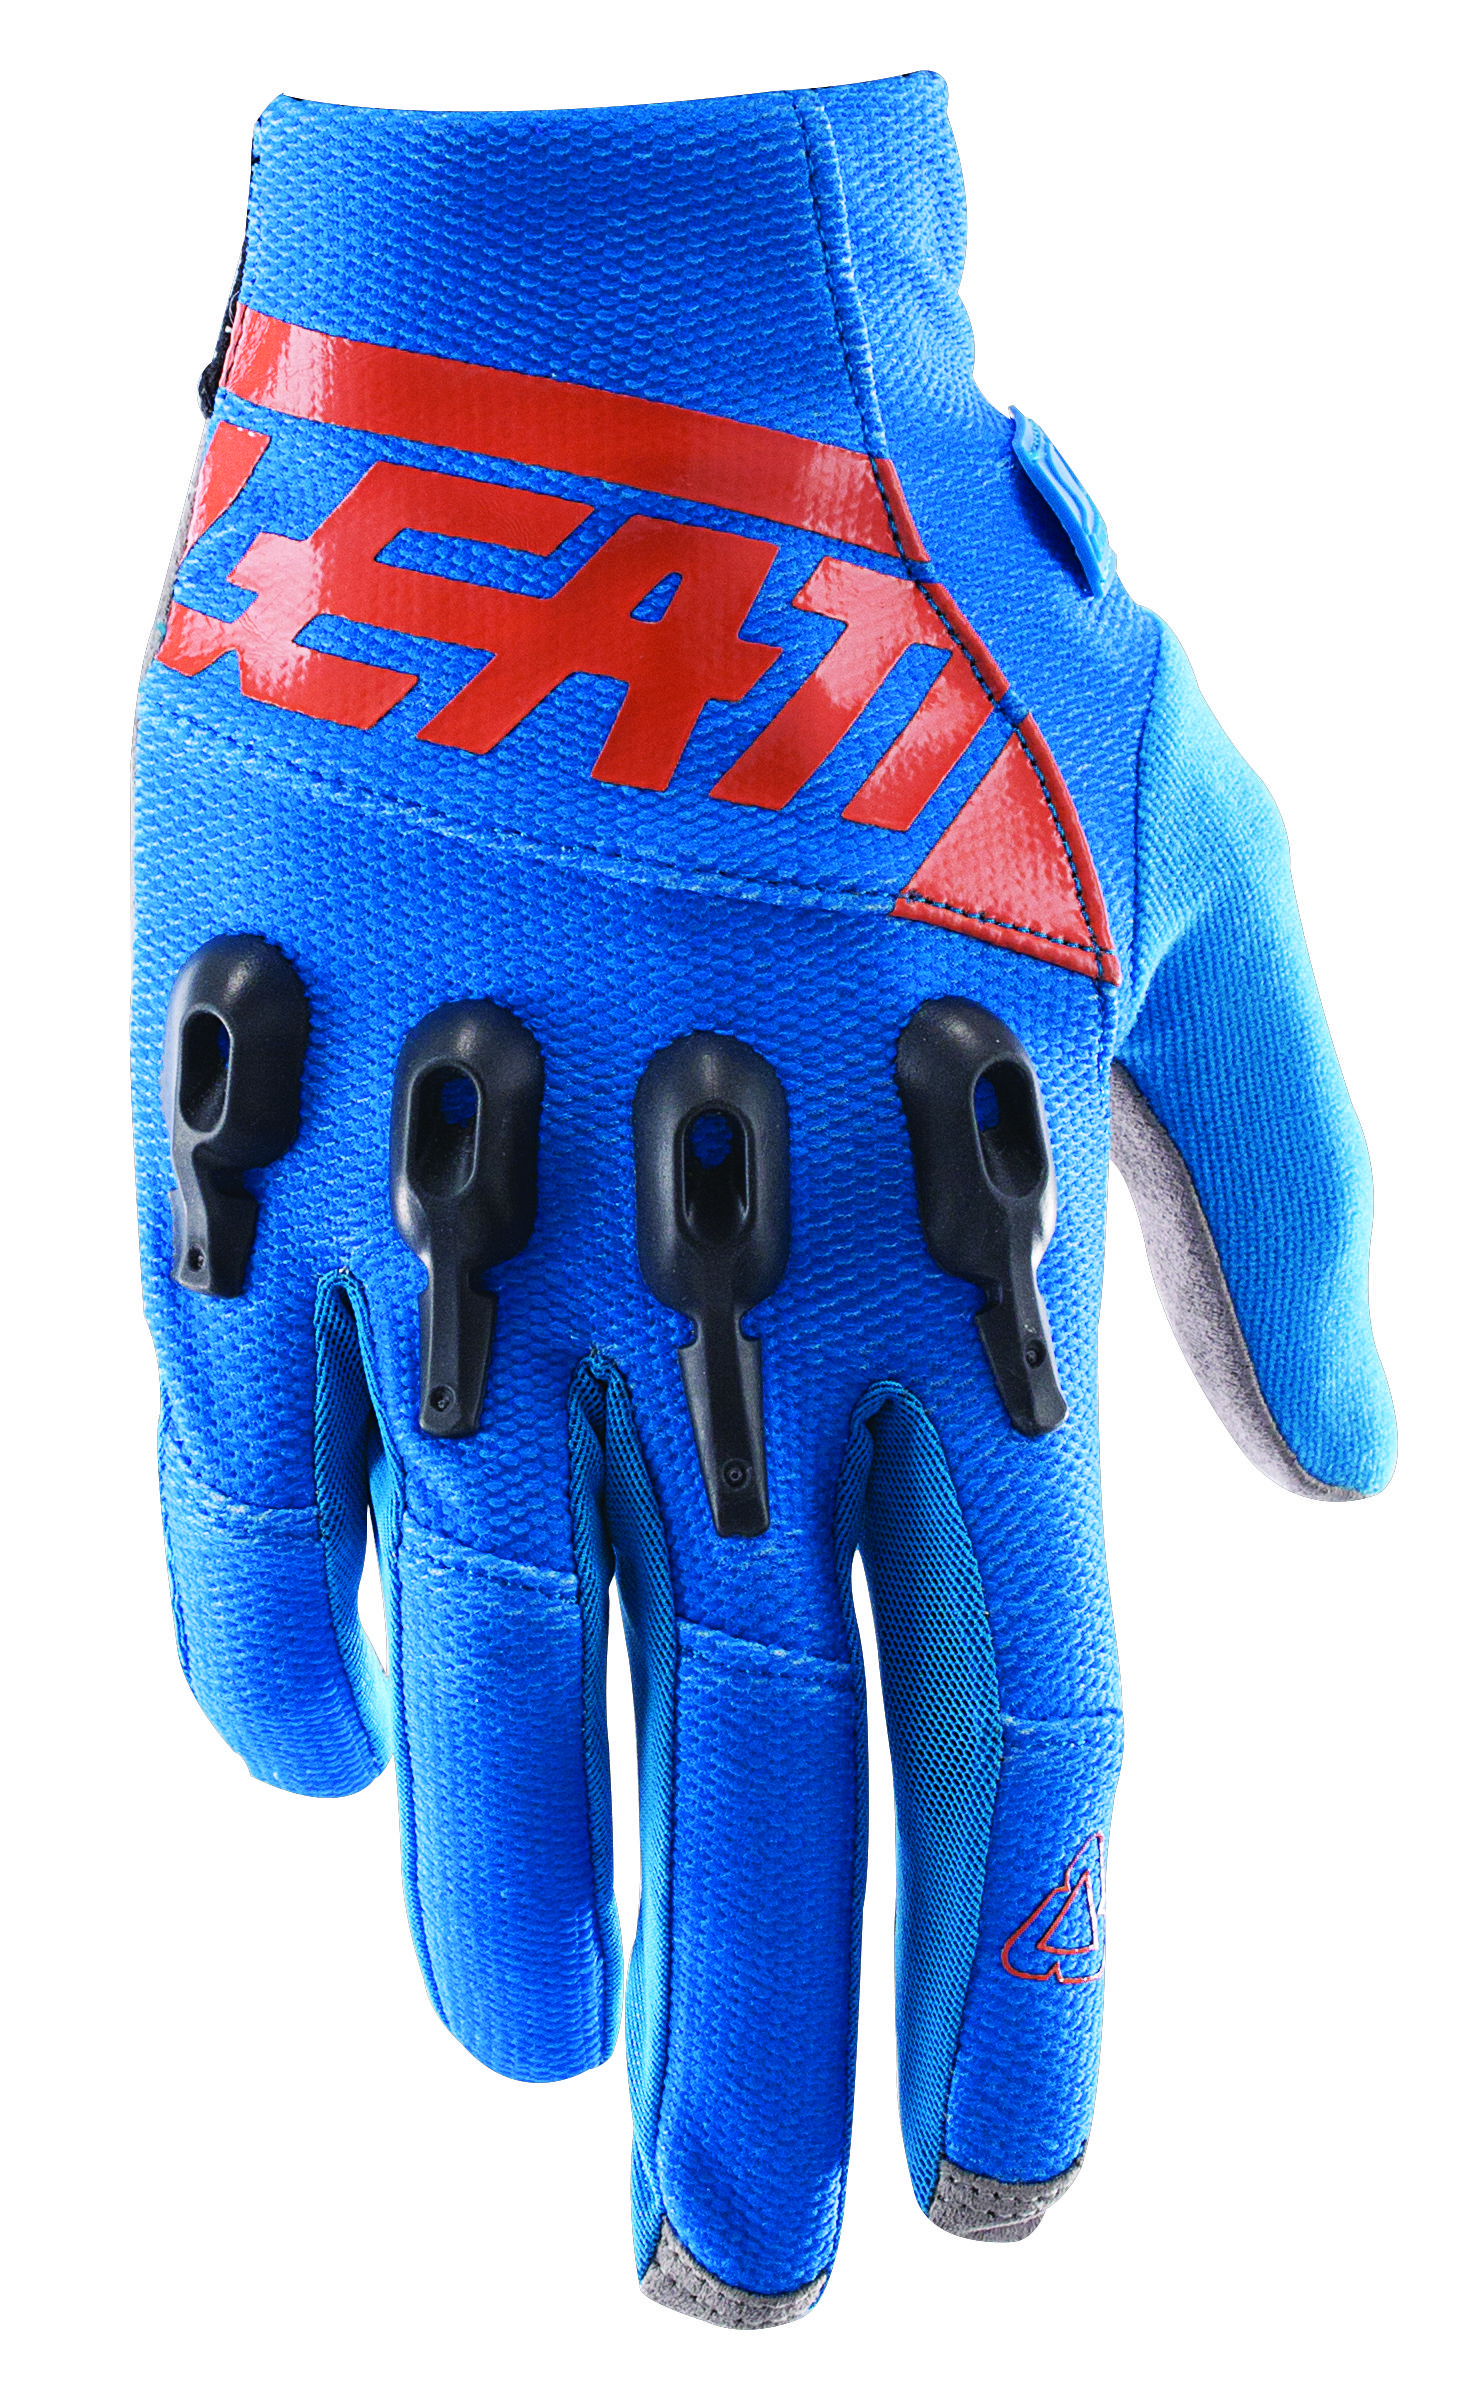 Super Vented Lite Leatt DBX 3.0 Lite Bicycle Gloves with